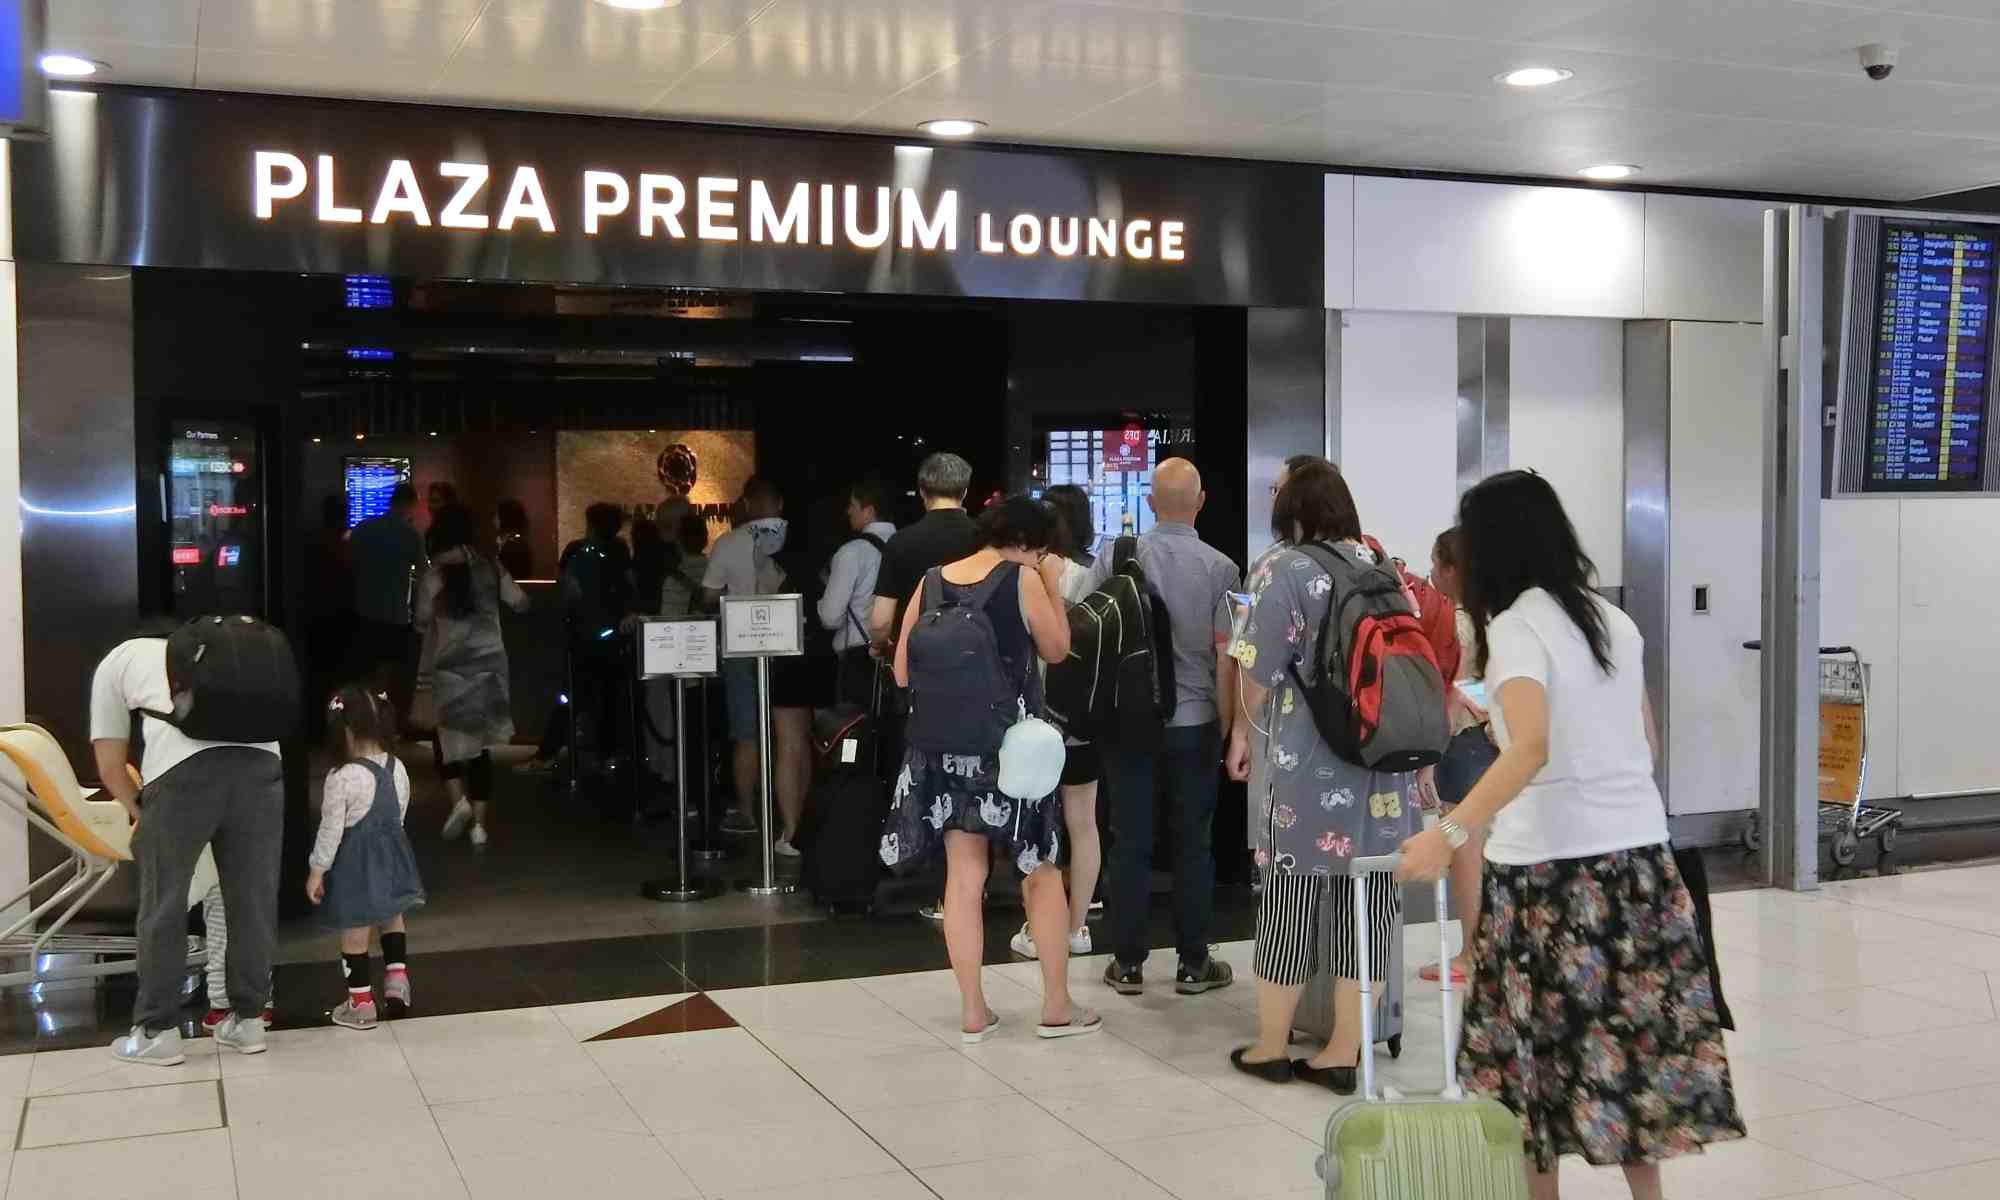 image-of-hong-kong-international-airport-plaza-premium-lounge-entrance